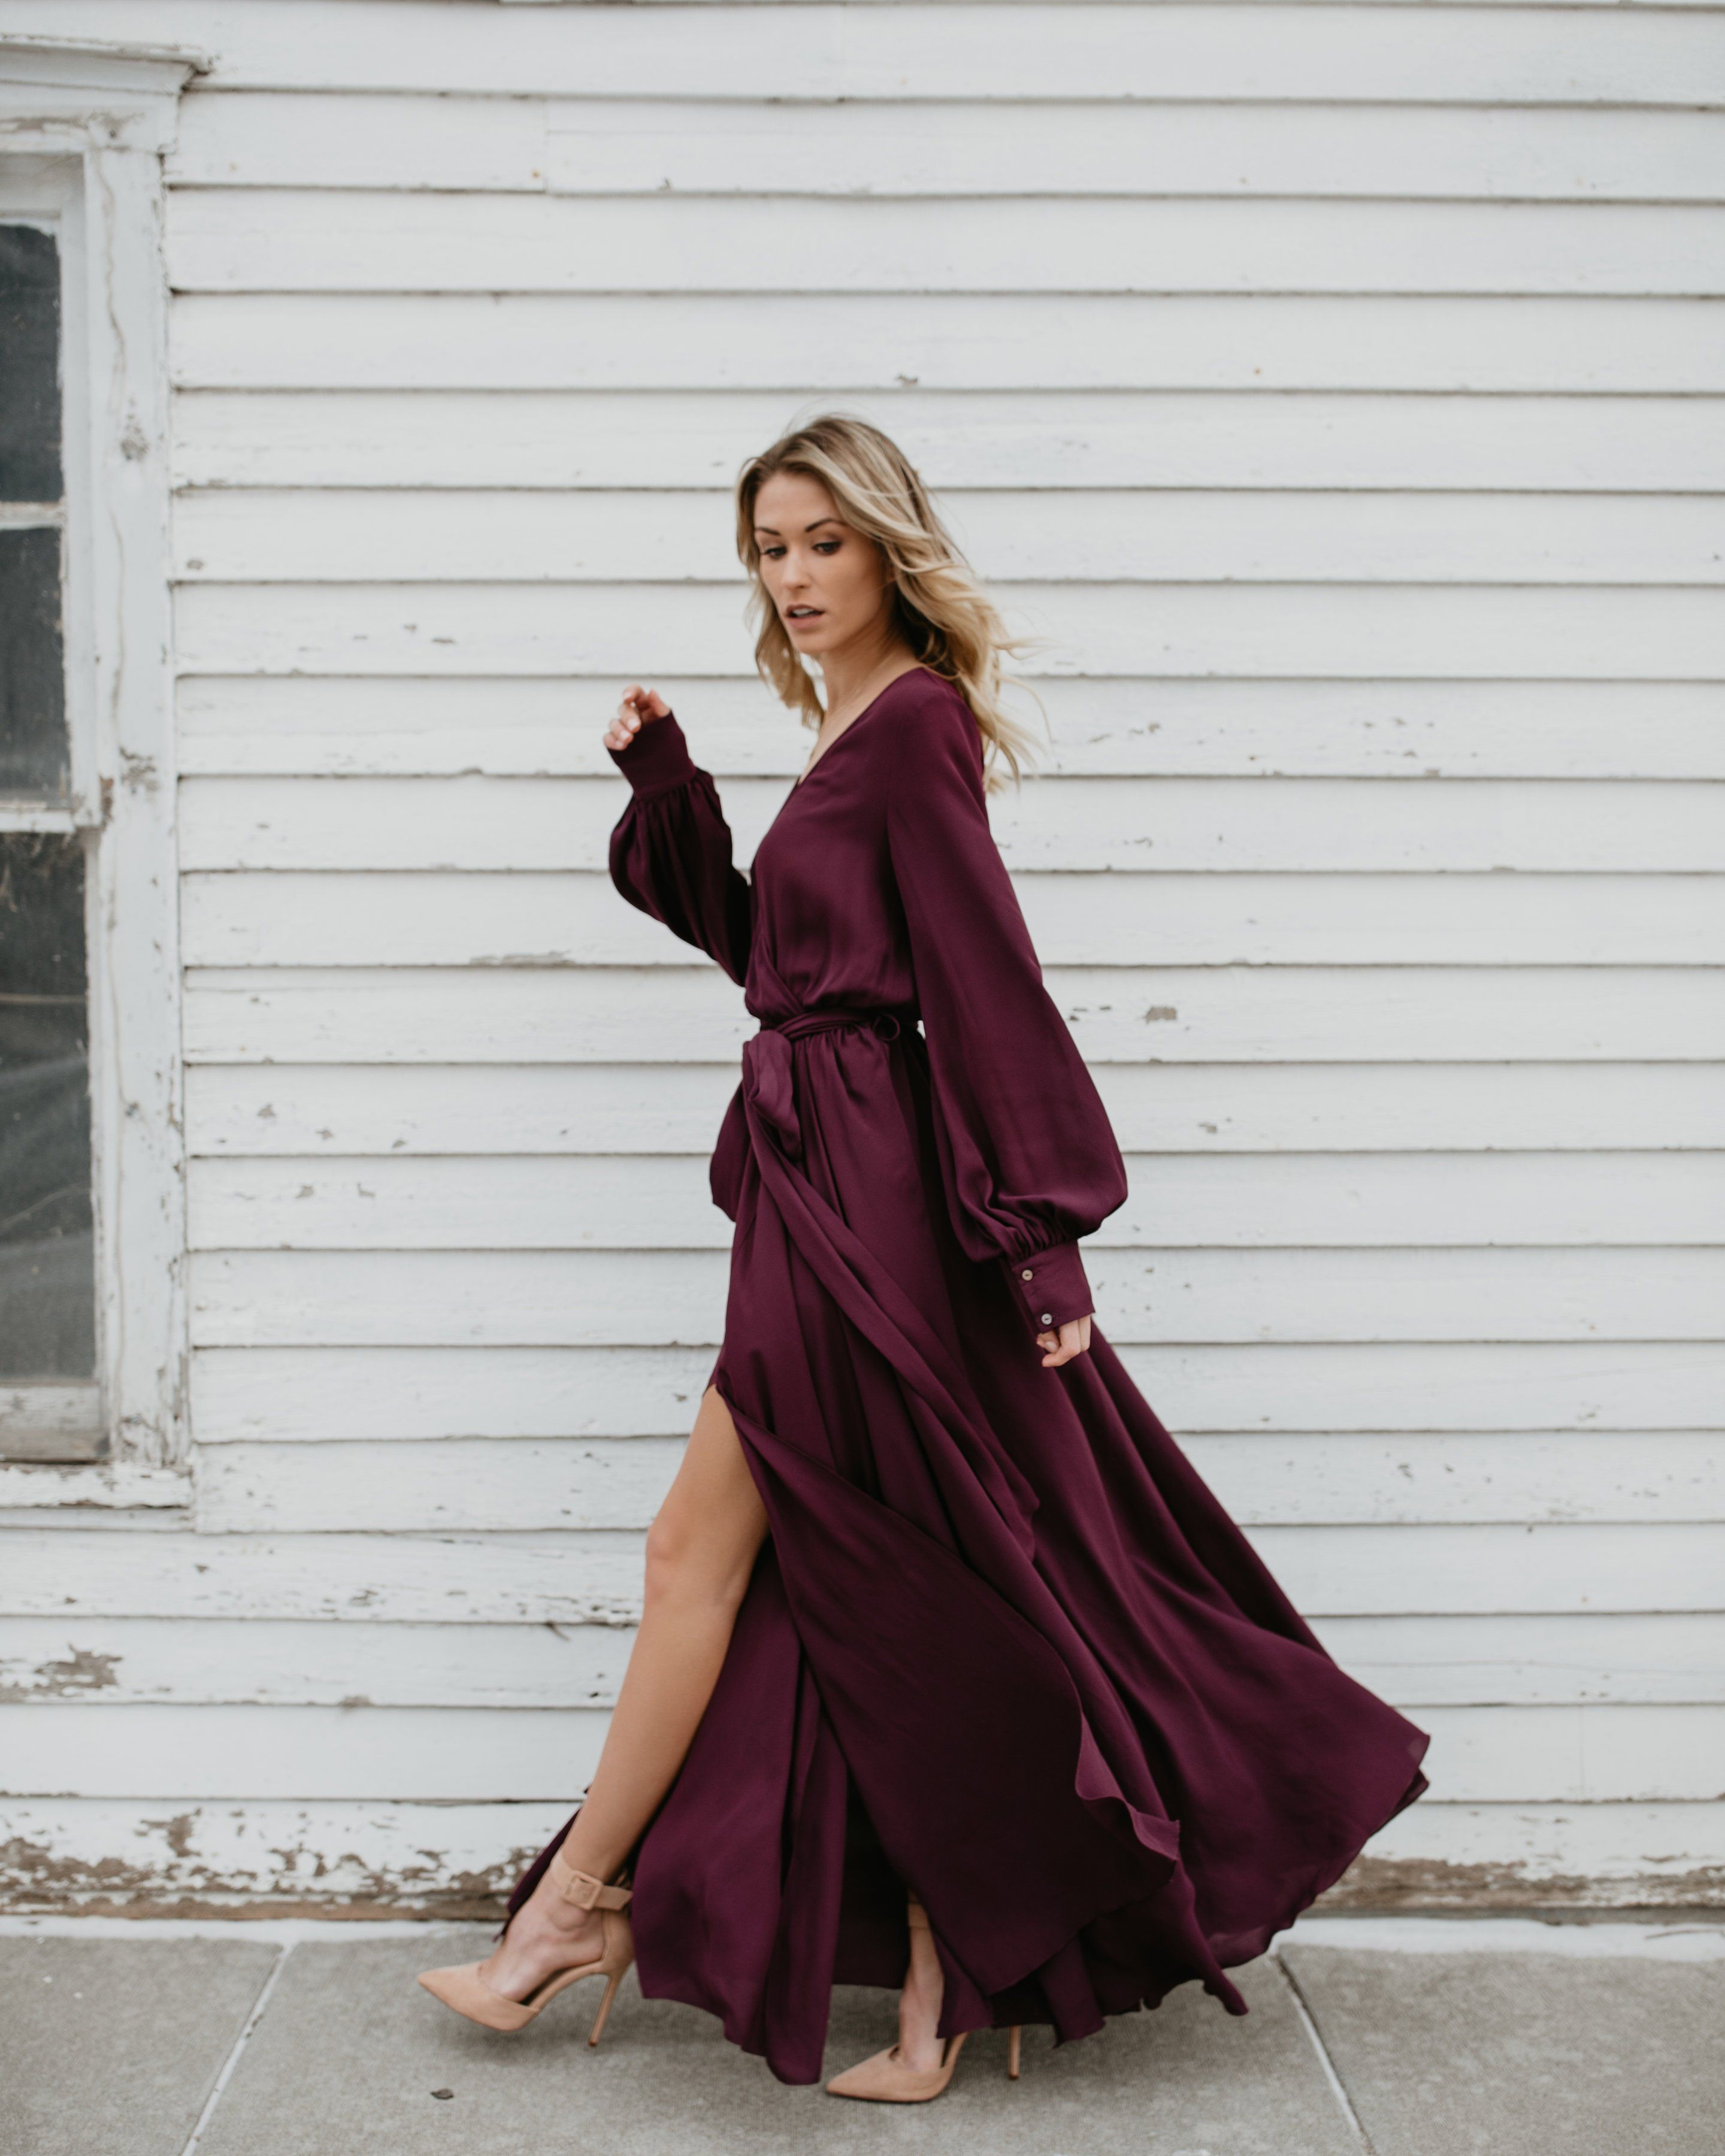 3dc04bf27af3 Long Sleeve Diana Maxi Dress - Wine Long Sleeve Flowy Dresses